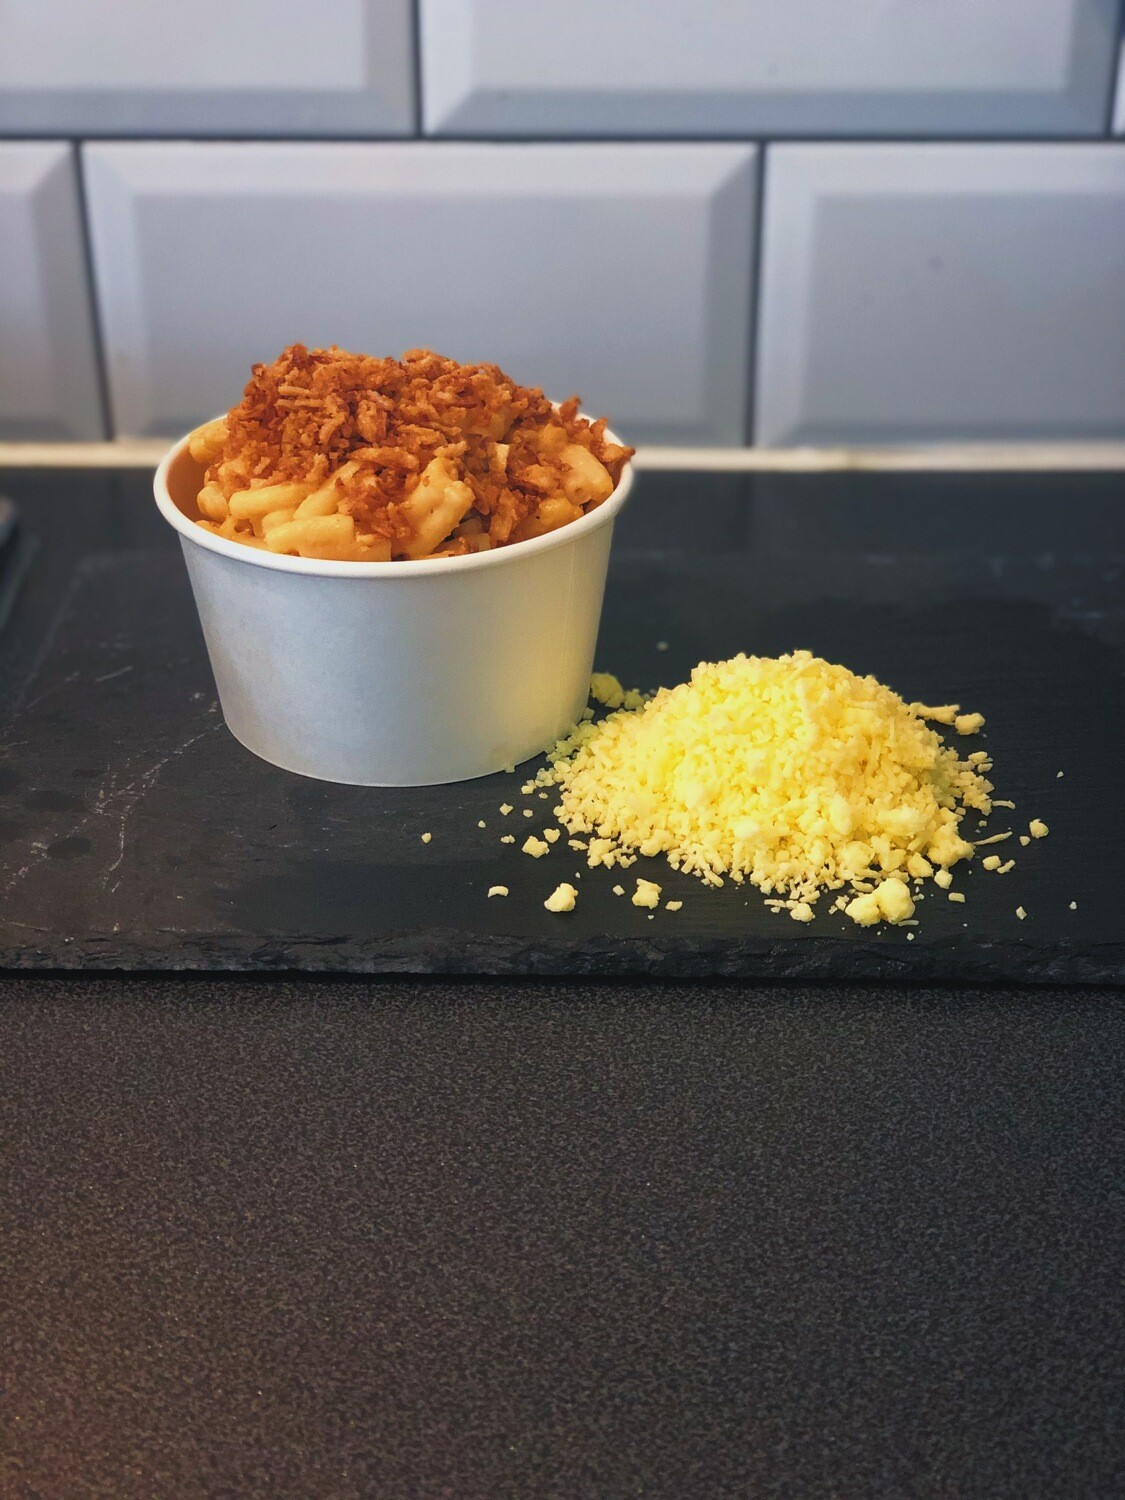 Add Topping - Extra Cheese